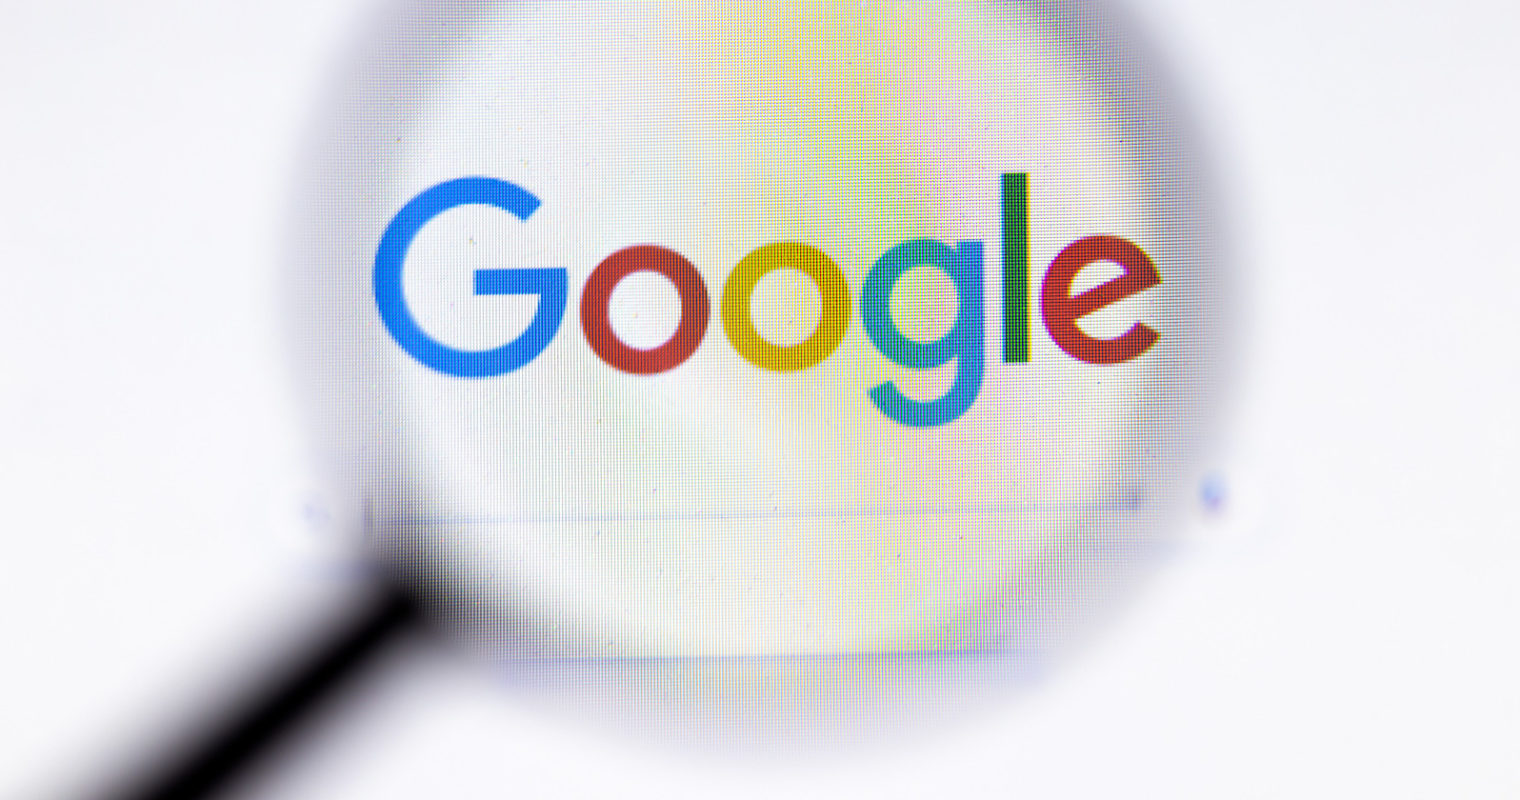 Google Updates Image Search With Icons for Products, Recipes, & Videos